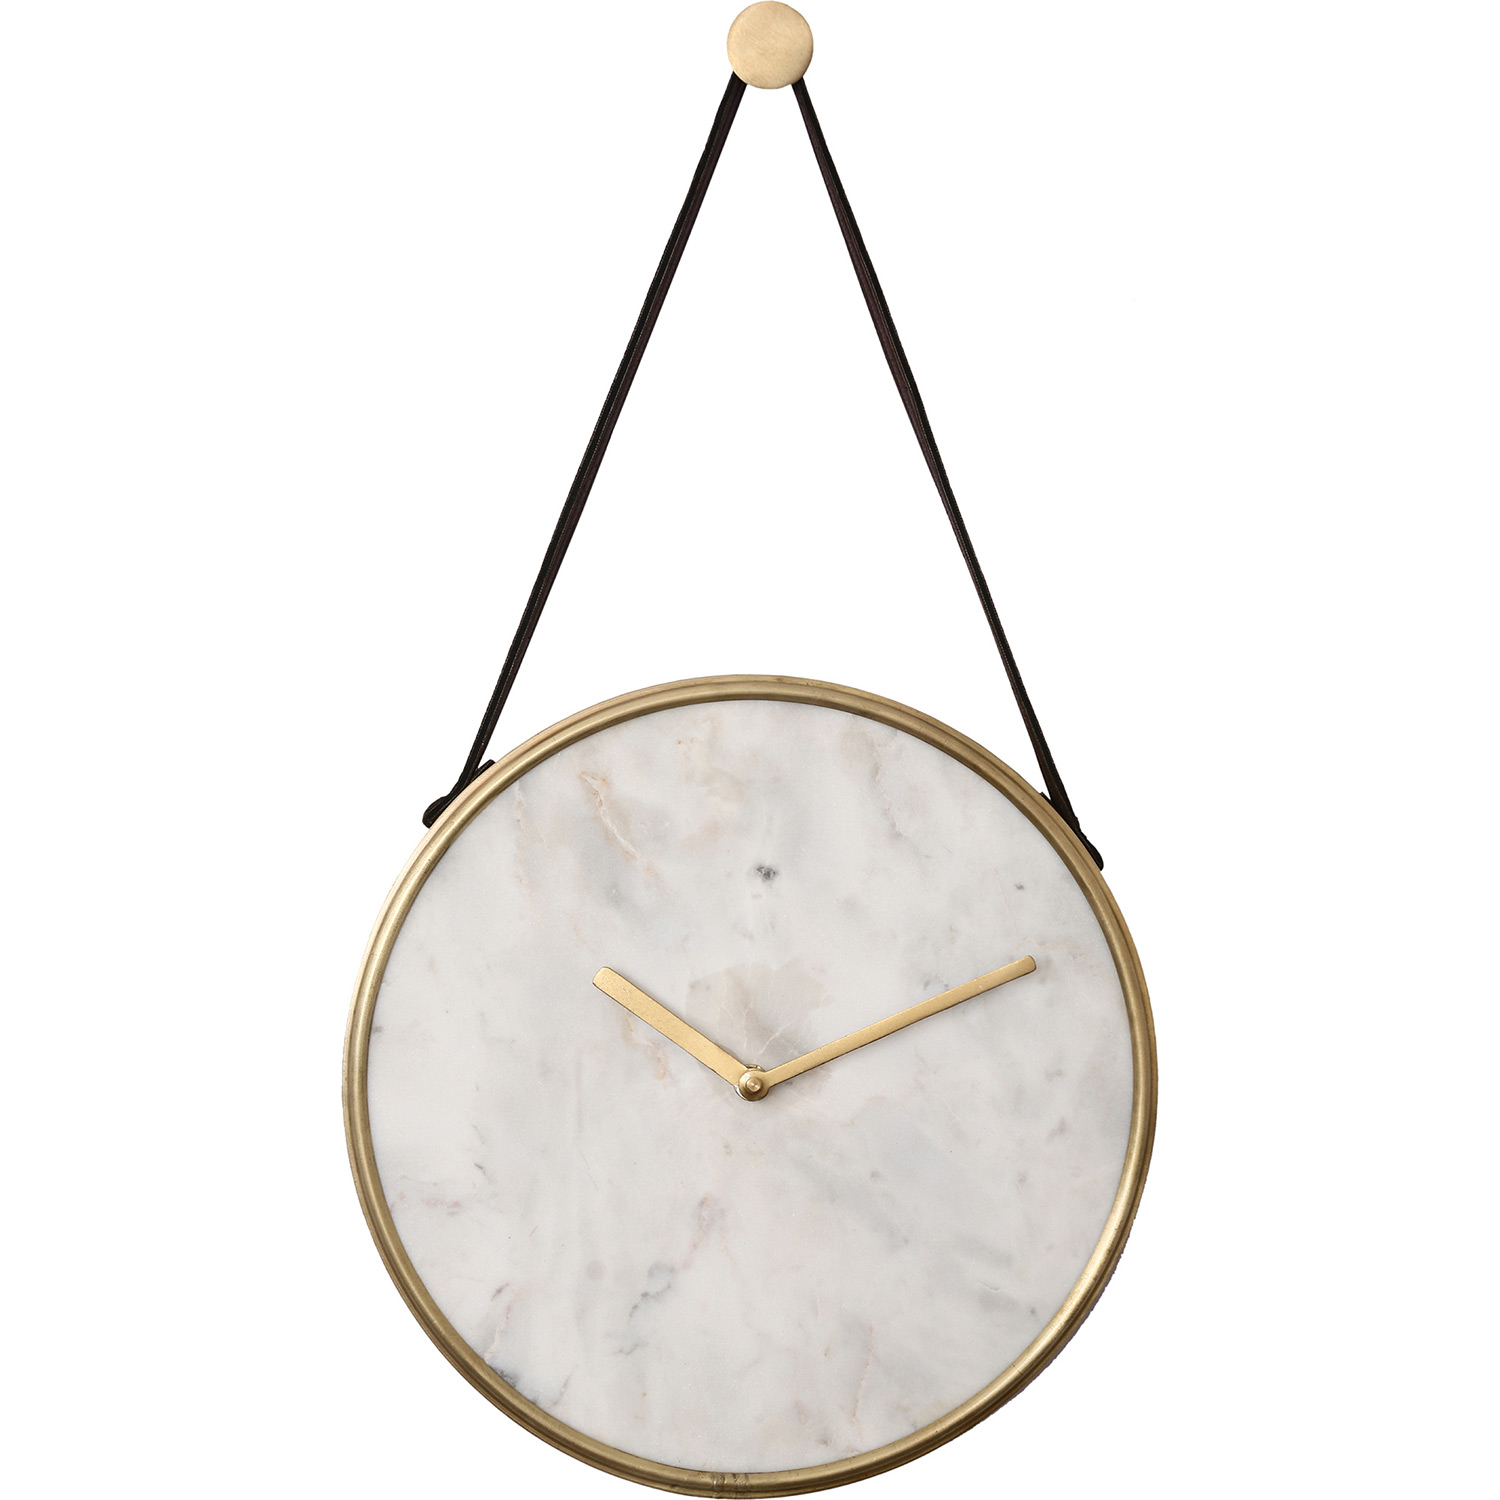 Ren-Wil Livenna Wall Clock - White Marble/Antique Brass/Tan Leather